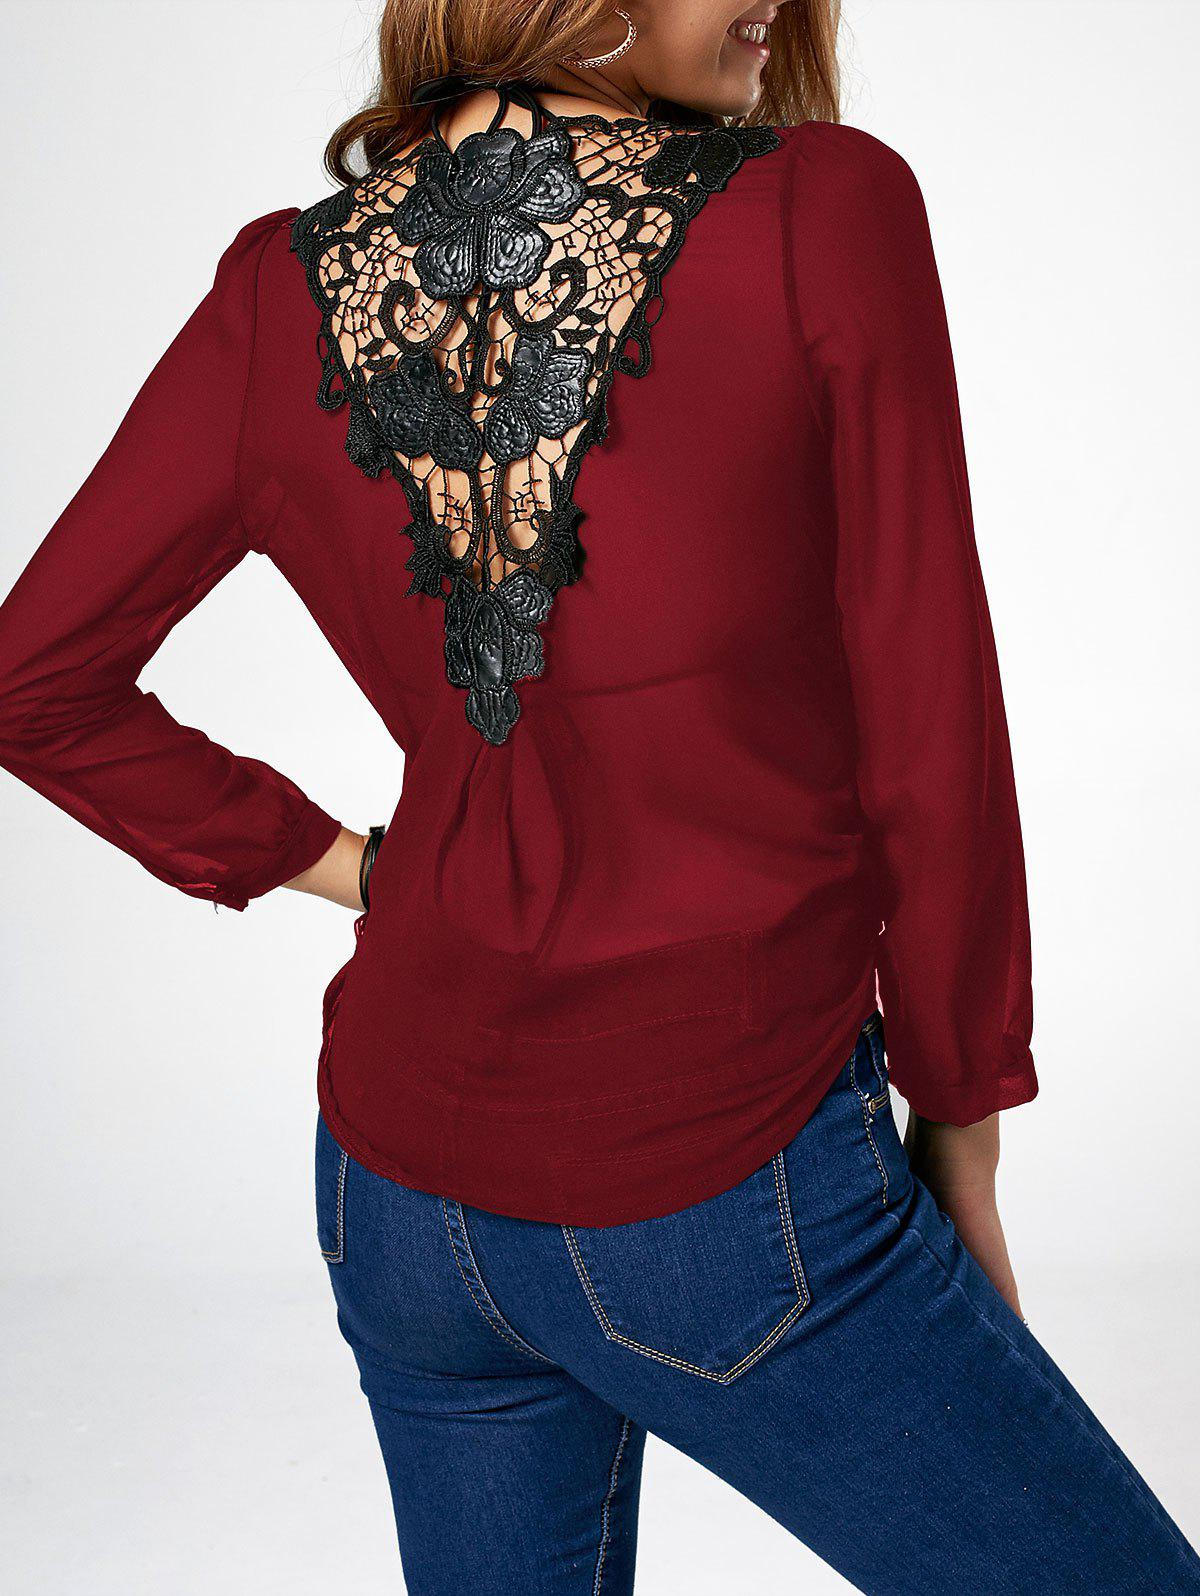 Lace Trim Chiffon Asymmetric Long Sleeve Blouse jabot chiffon long sleeve blouse